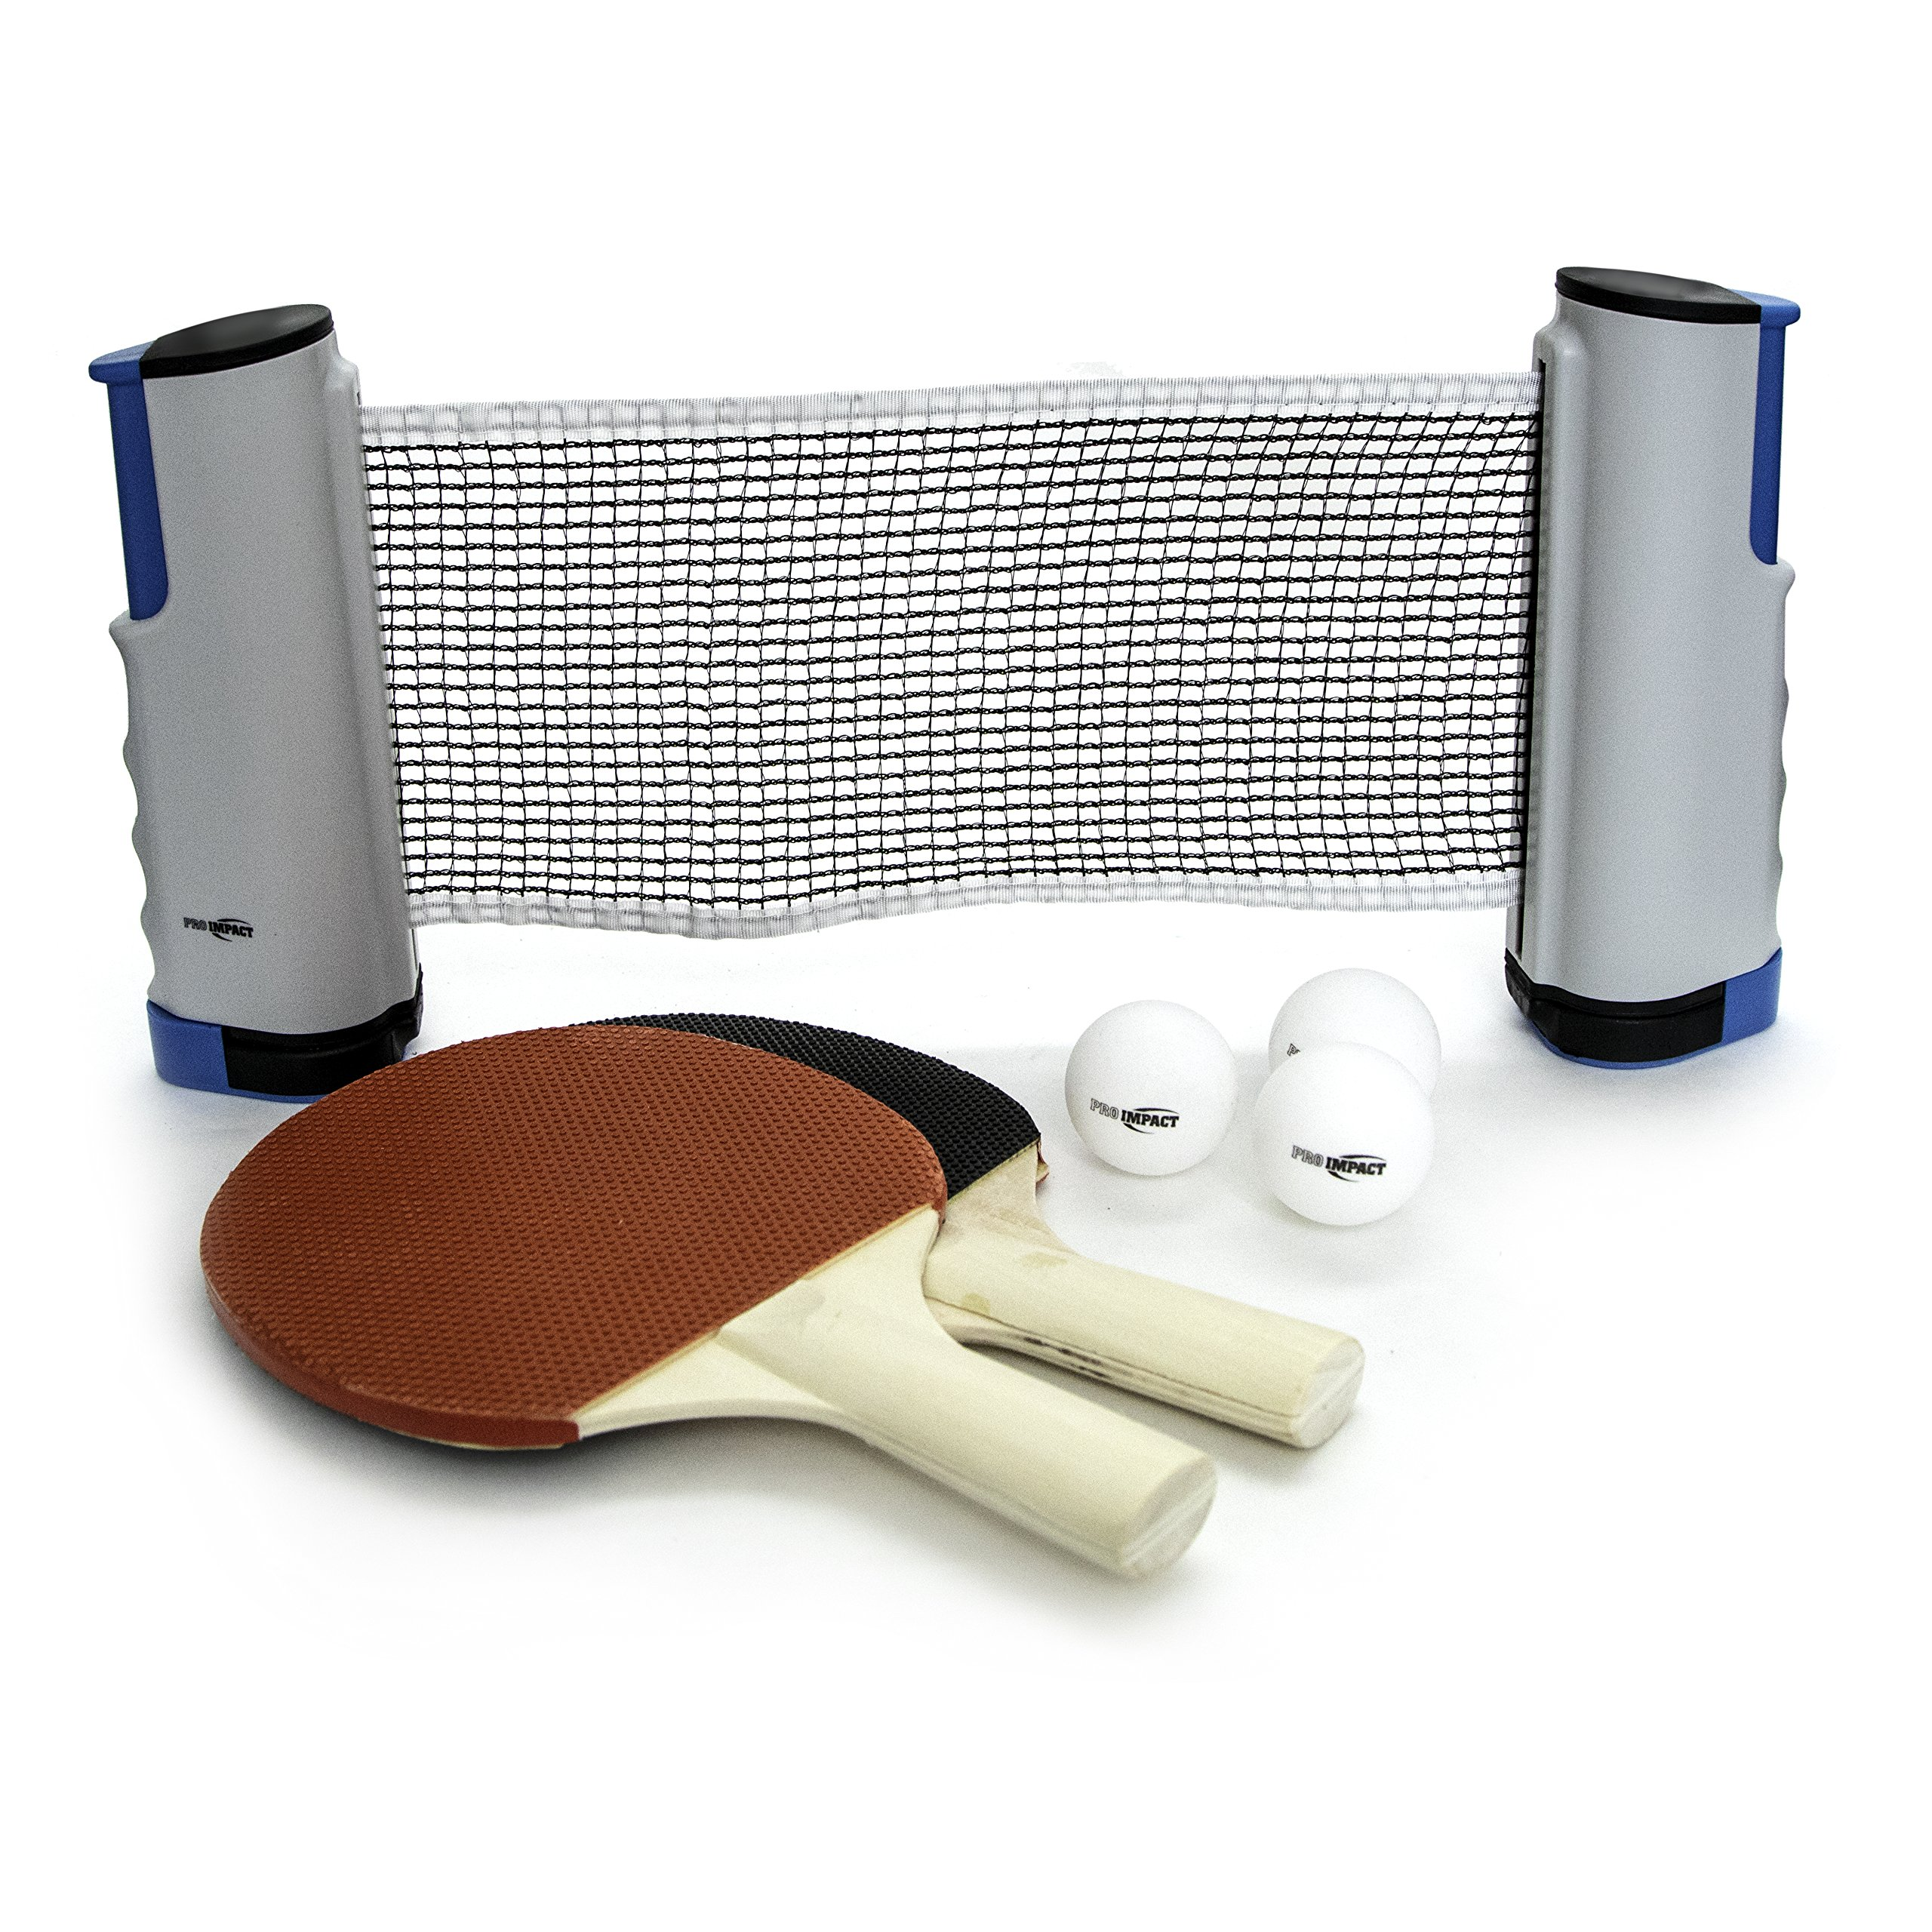 Pro Impact Table Tennis Ping Pong to Go set- Includes 2 Paddles, Balls, Portable Net and a Mesh Carry Bag